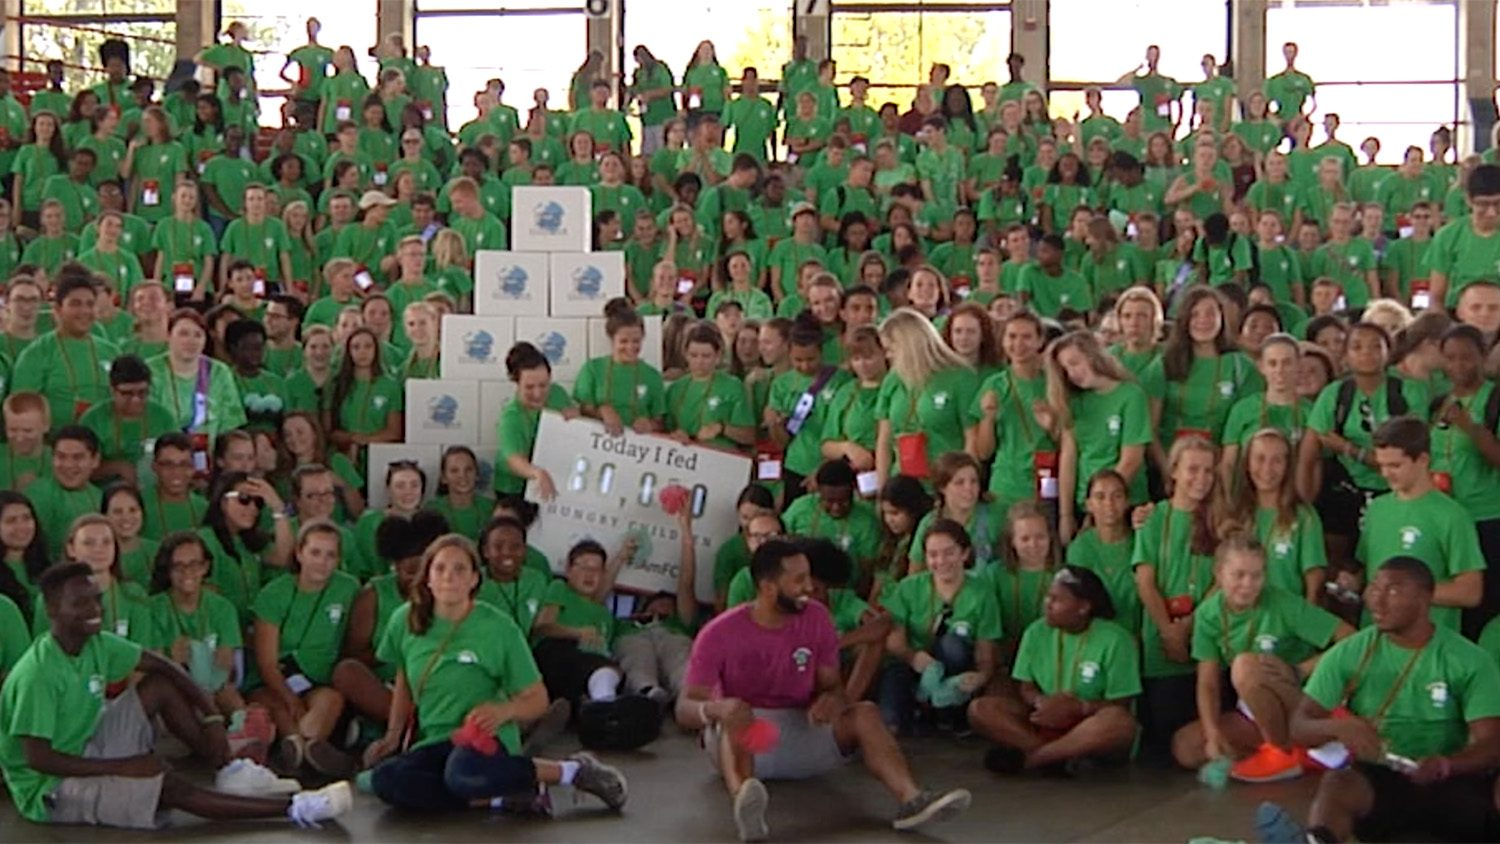 A large group of young people wearing green shirts and holding a large poster participating in the 2016 North Carolina State 4-H Congress